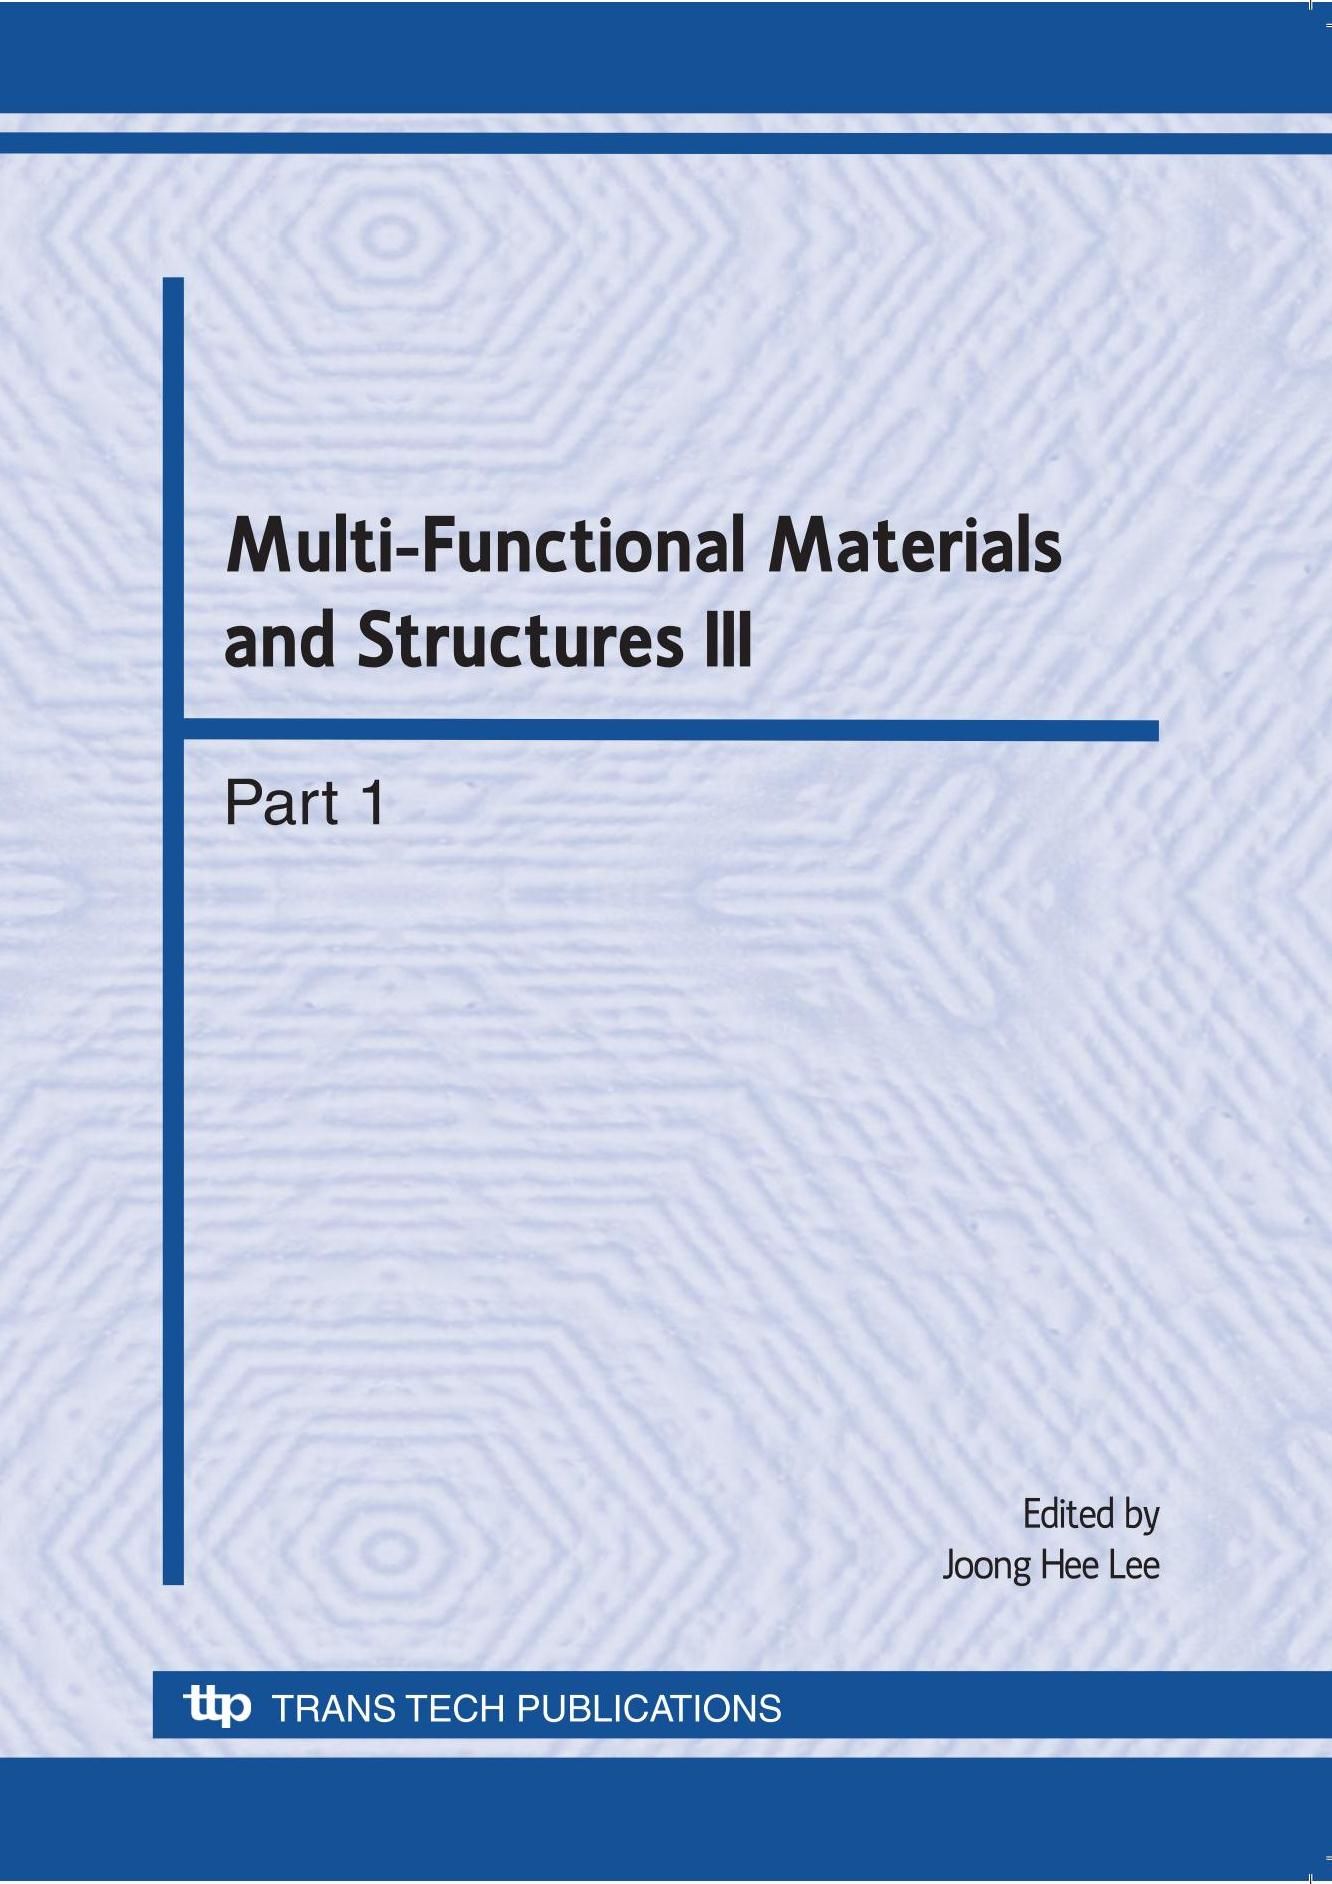 Multi-Functional Materials and Structures III